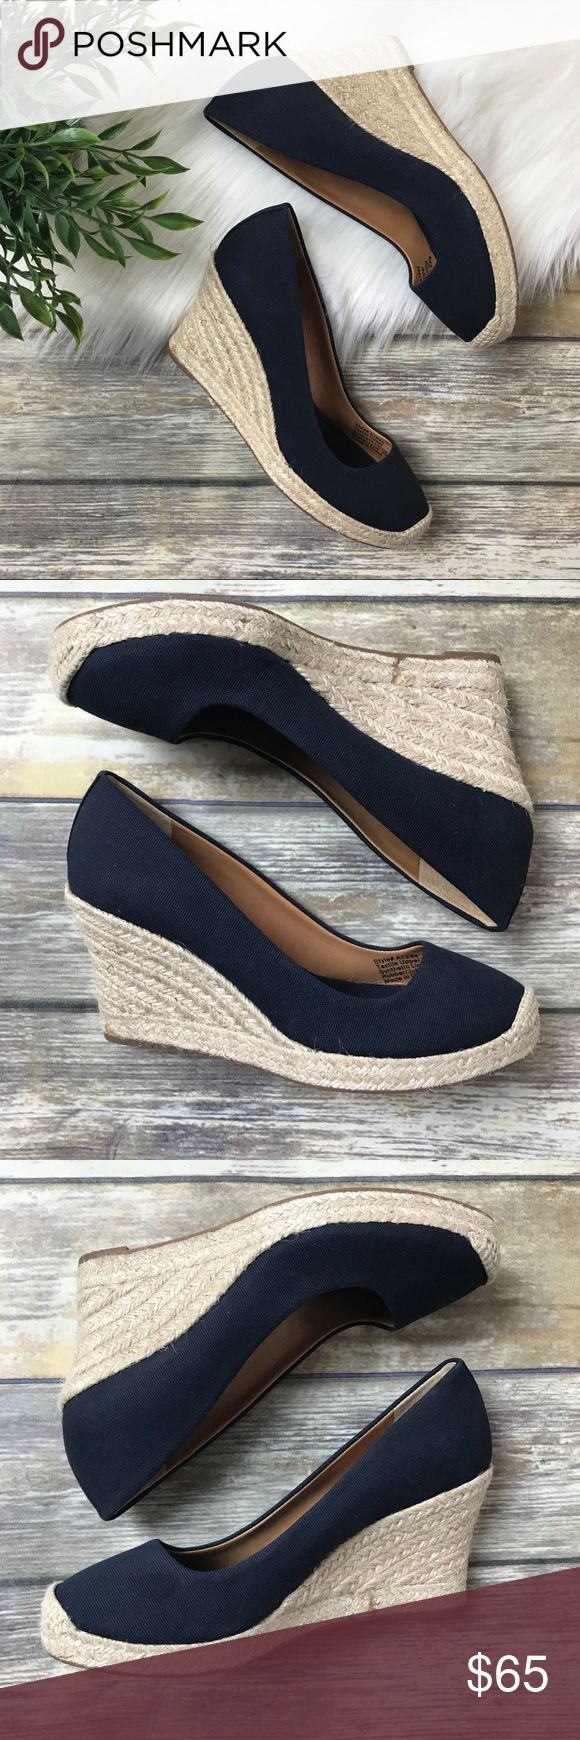 {J. Crew Factory} Canvas Espadrille Wedges | 6 These J. Crew factory canvas espadrille wedges are in great condition. They are never worn and nwot. They are size 6. Rubber/ jute sole. Navy blue color. Some glue minor spots from manufacturer (see photos).   Hight of heel: 3 1/3 in. Hight of full length in back: 5 1/2 in. Sole thickness: 1/2 in. J. Crew Factory Shoes Espadrilles